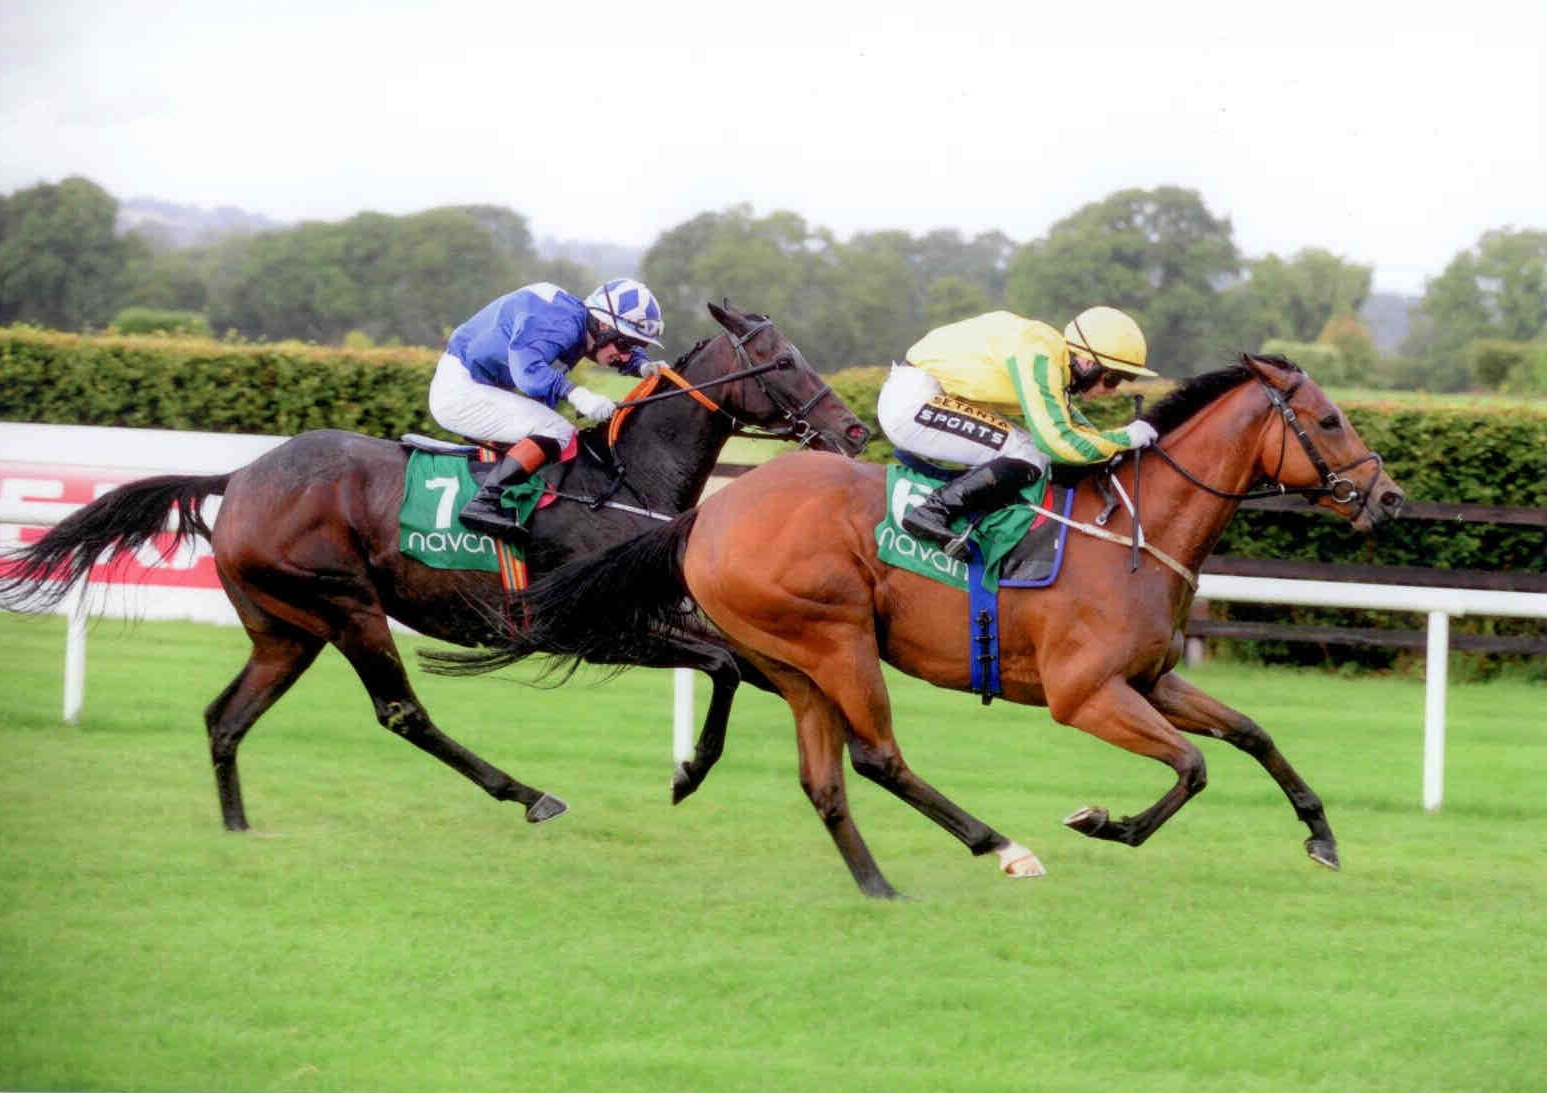 NINGXAI gets the head infront at Navan on September 21st 2015